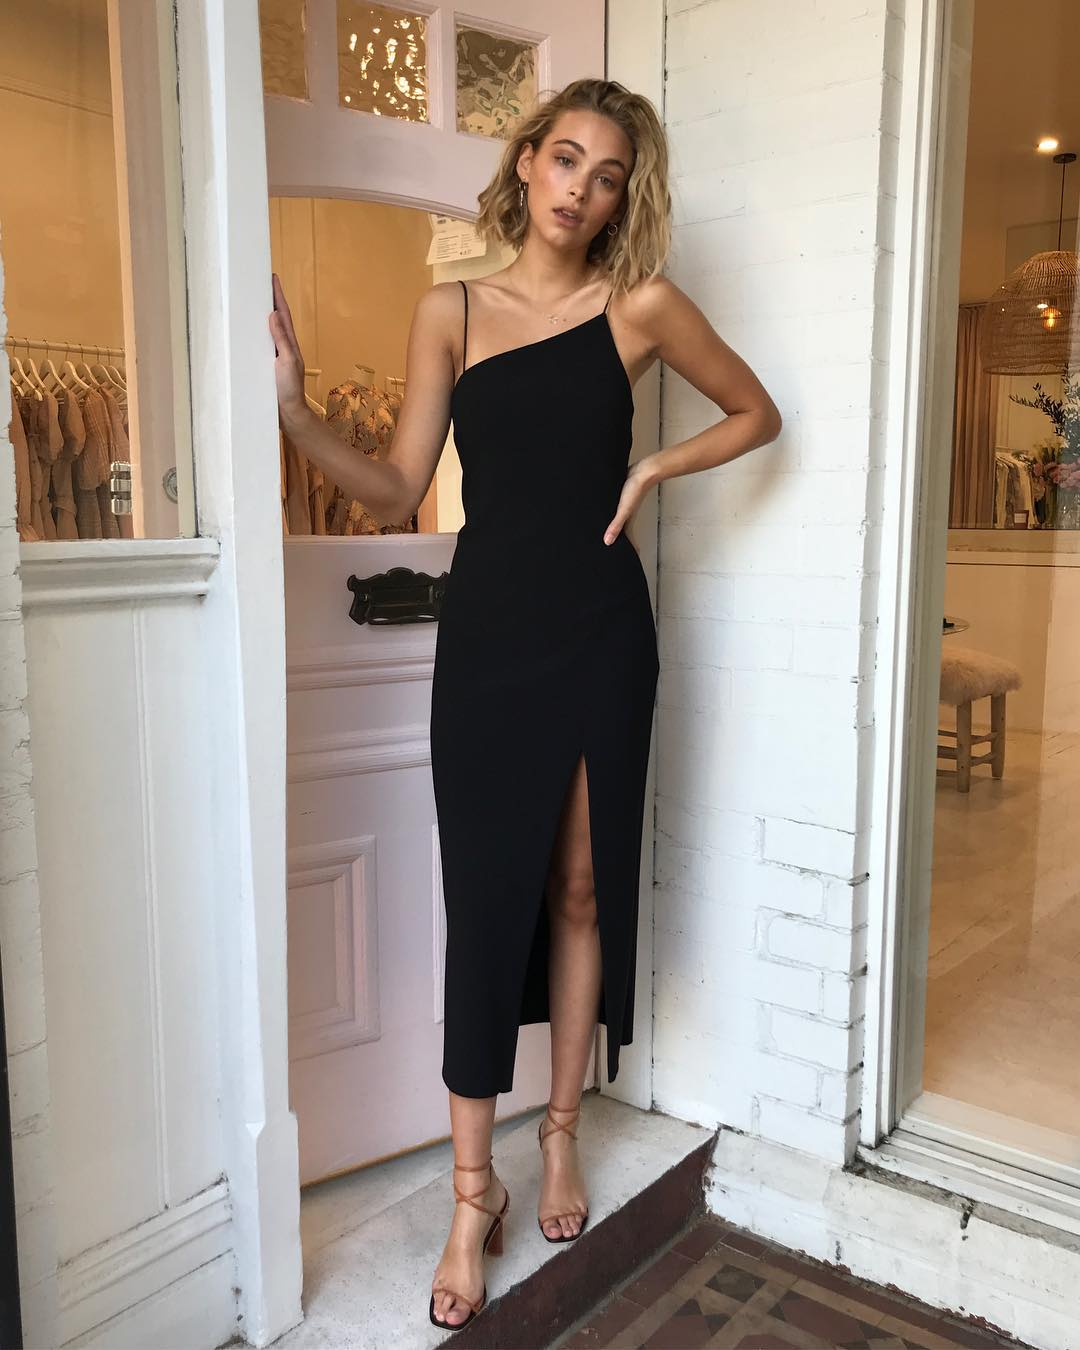 An Easy Yet Stylish Outfit Idea for a Summer Wedding — Black Cami Dress and Nude Sandals